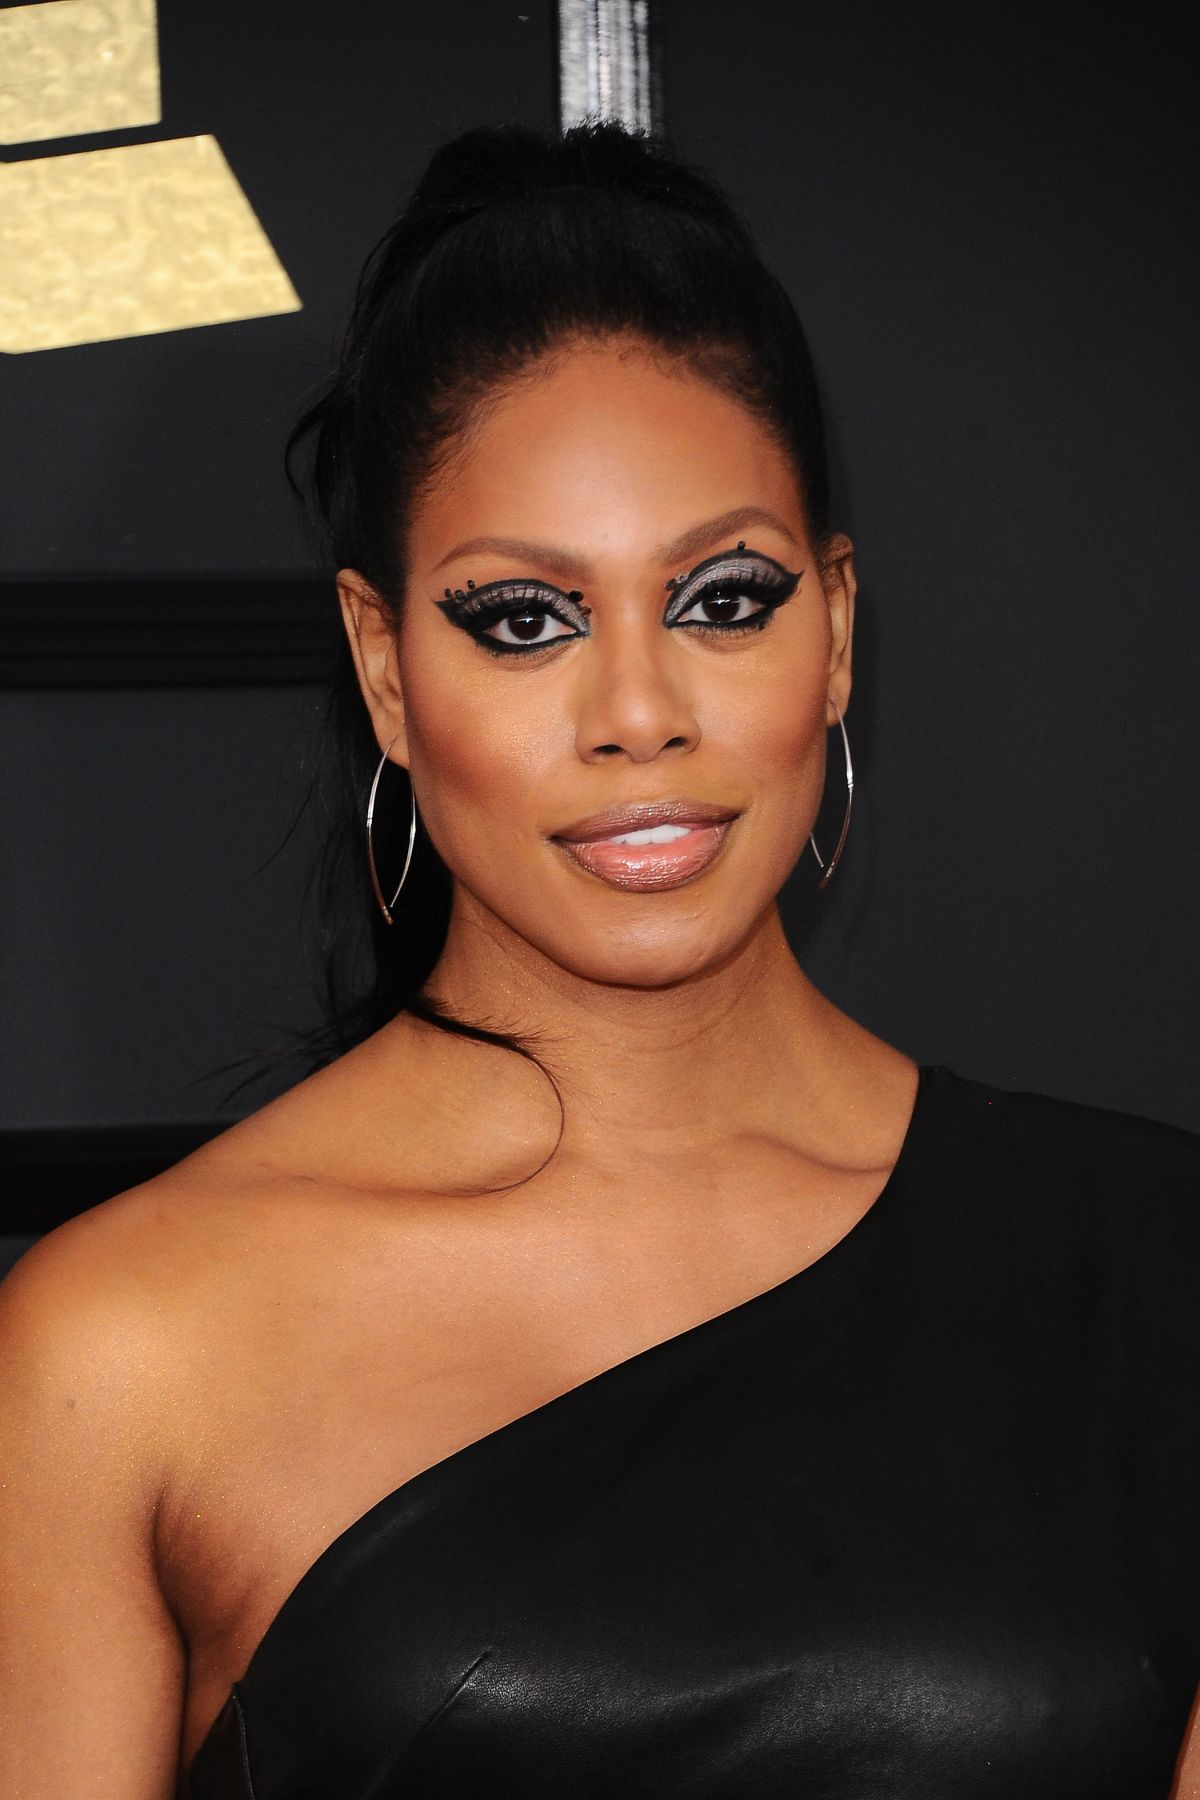 LAVERNE COX at 59th Annual Grammy Awards in Los Angeles 02/12/2017